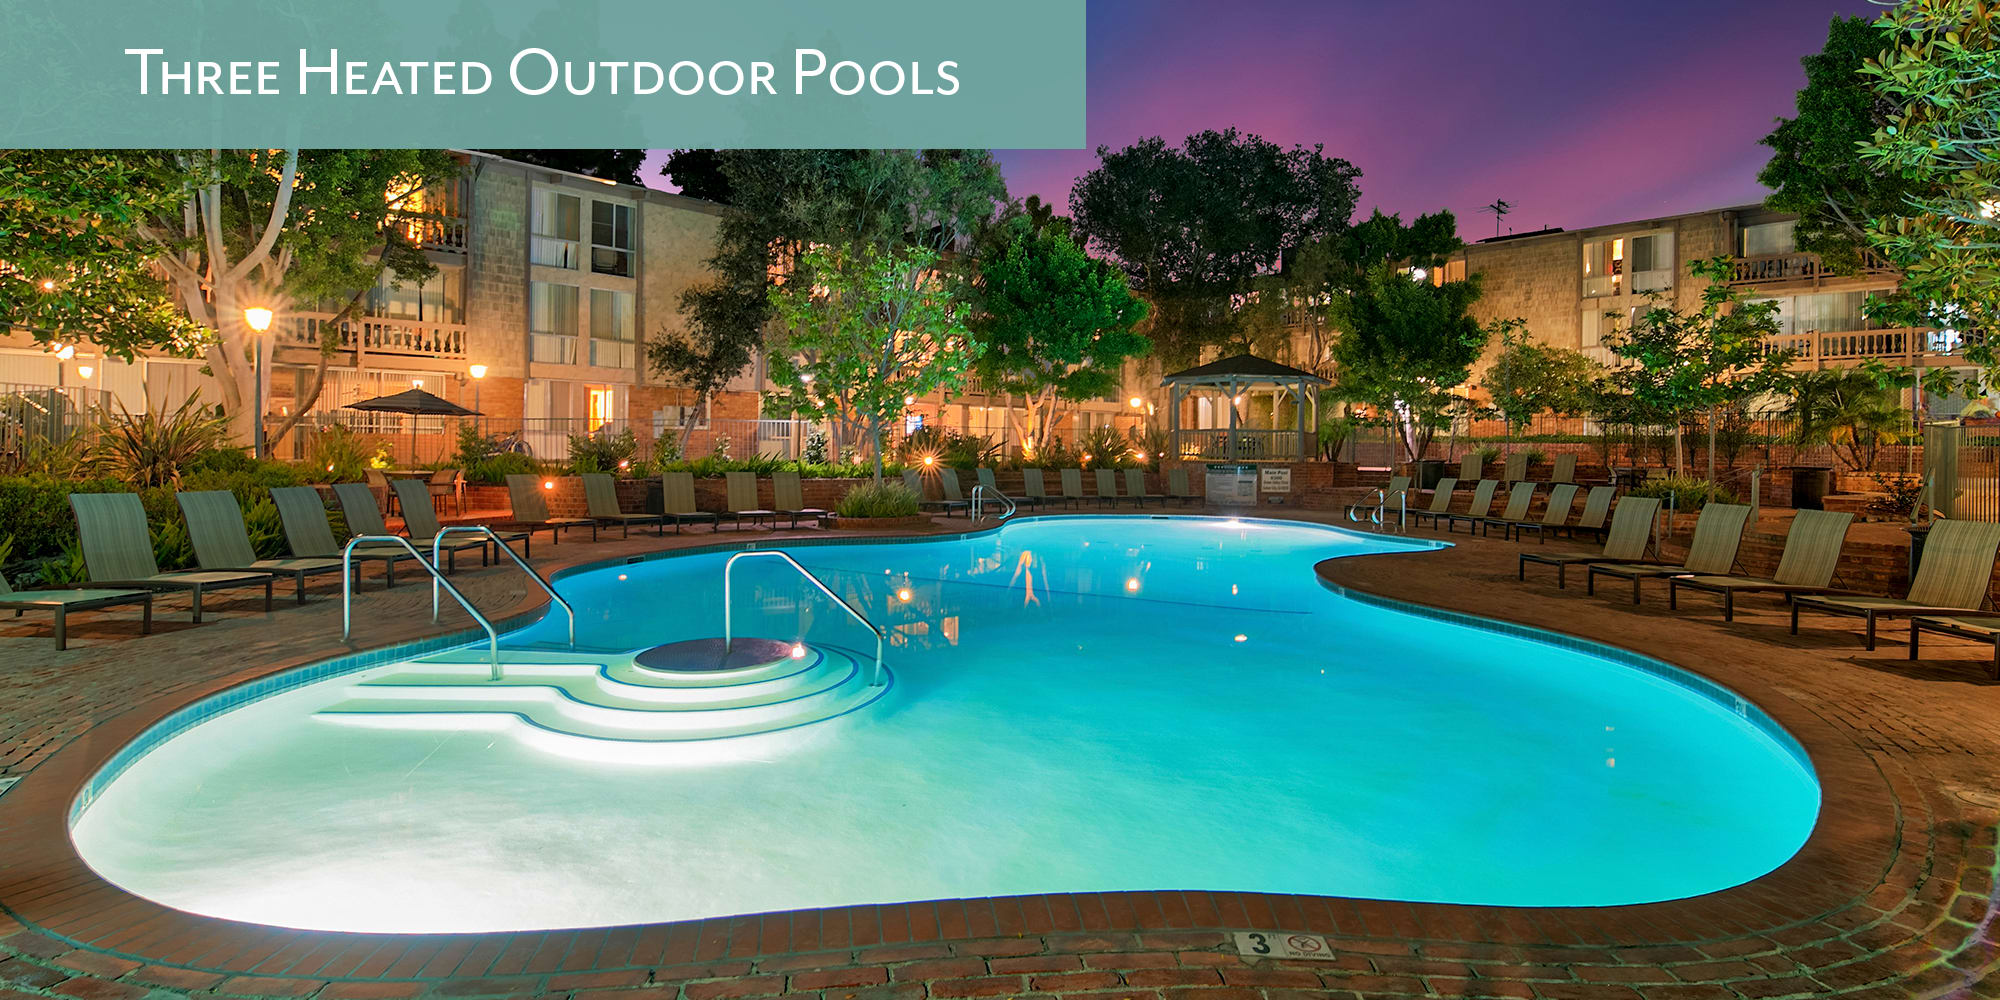 Three heated outdoor swimming pools at The Meadows in Culver City, California